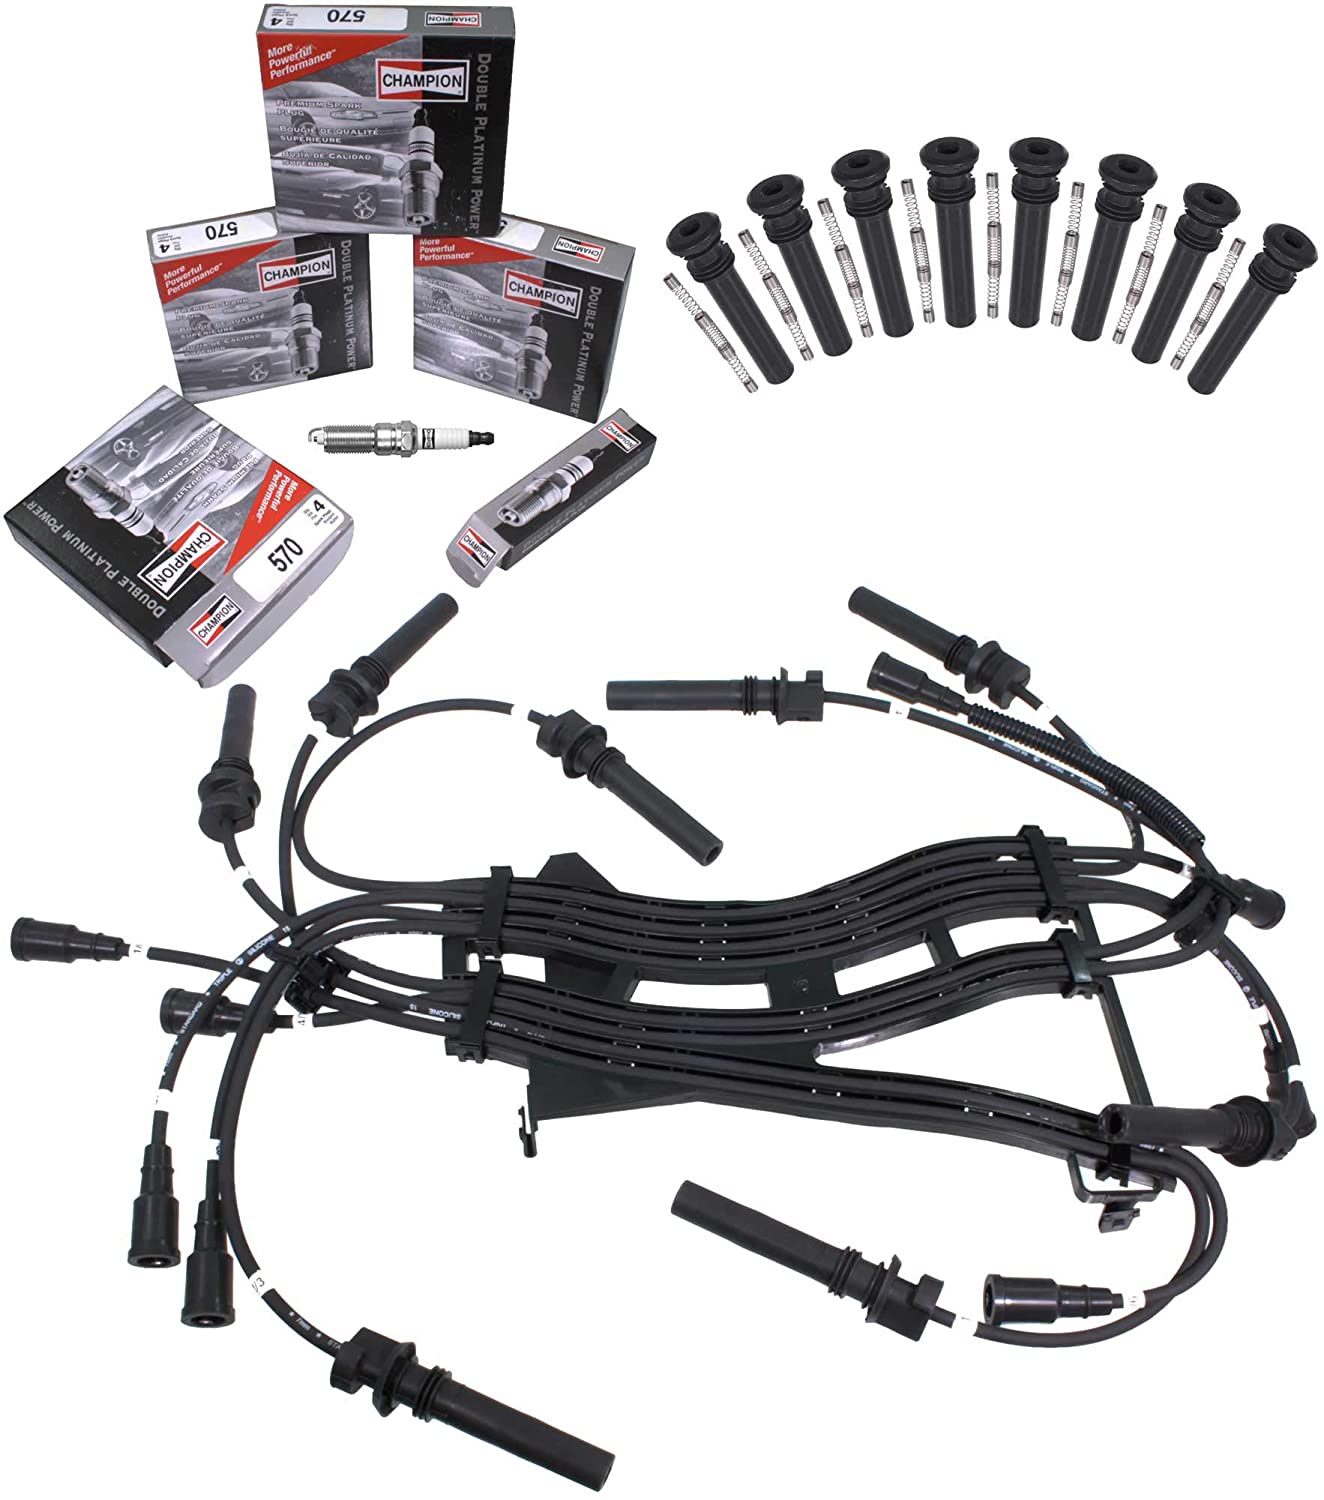 APDTY Tune Up Kit Includes 16 OEM Spark Plugs, 16 Ignition Wires & on